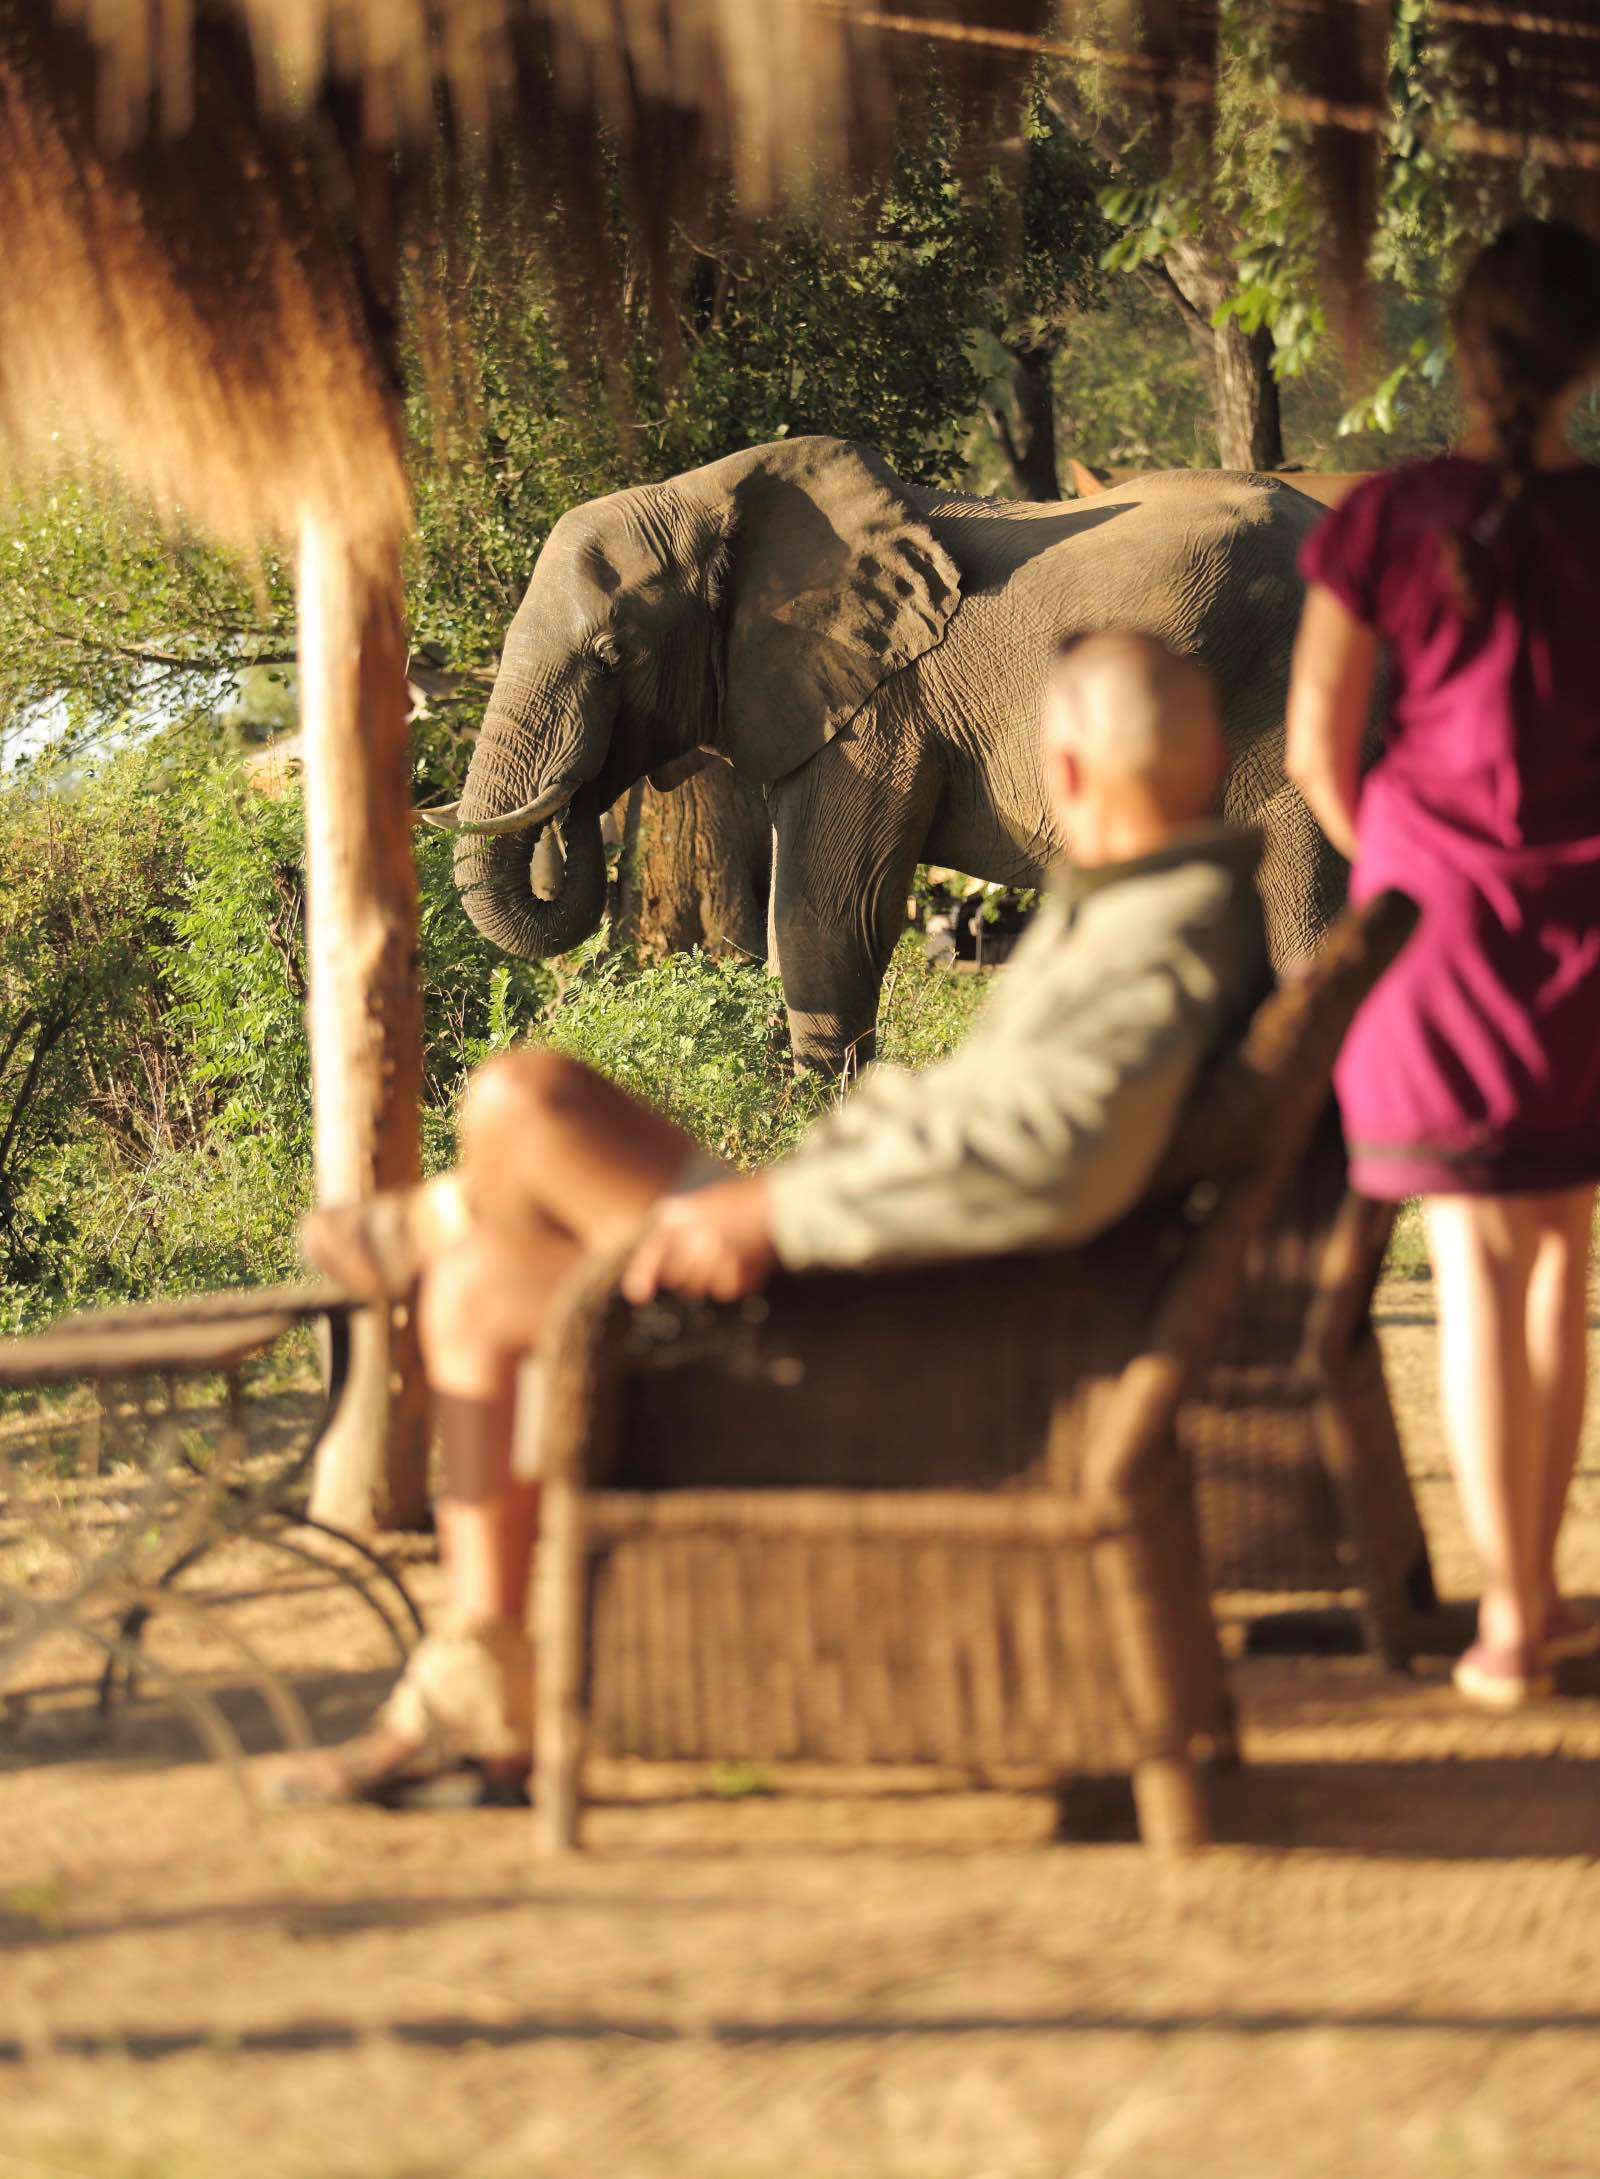 Elephants wander into camp at Chongwe River Camp2